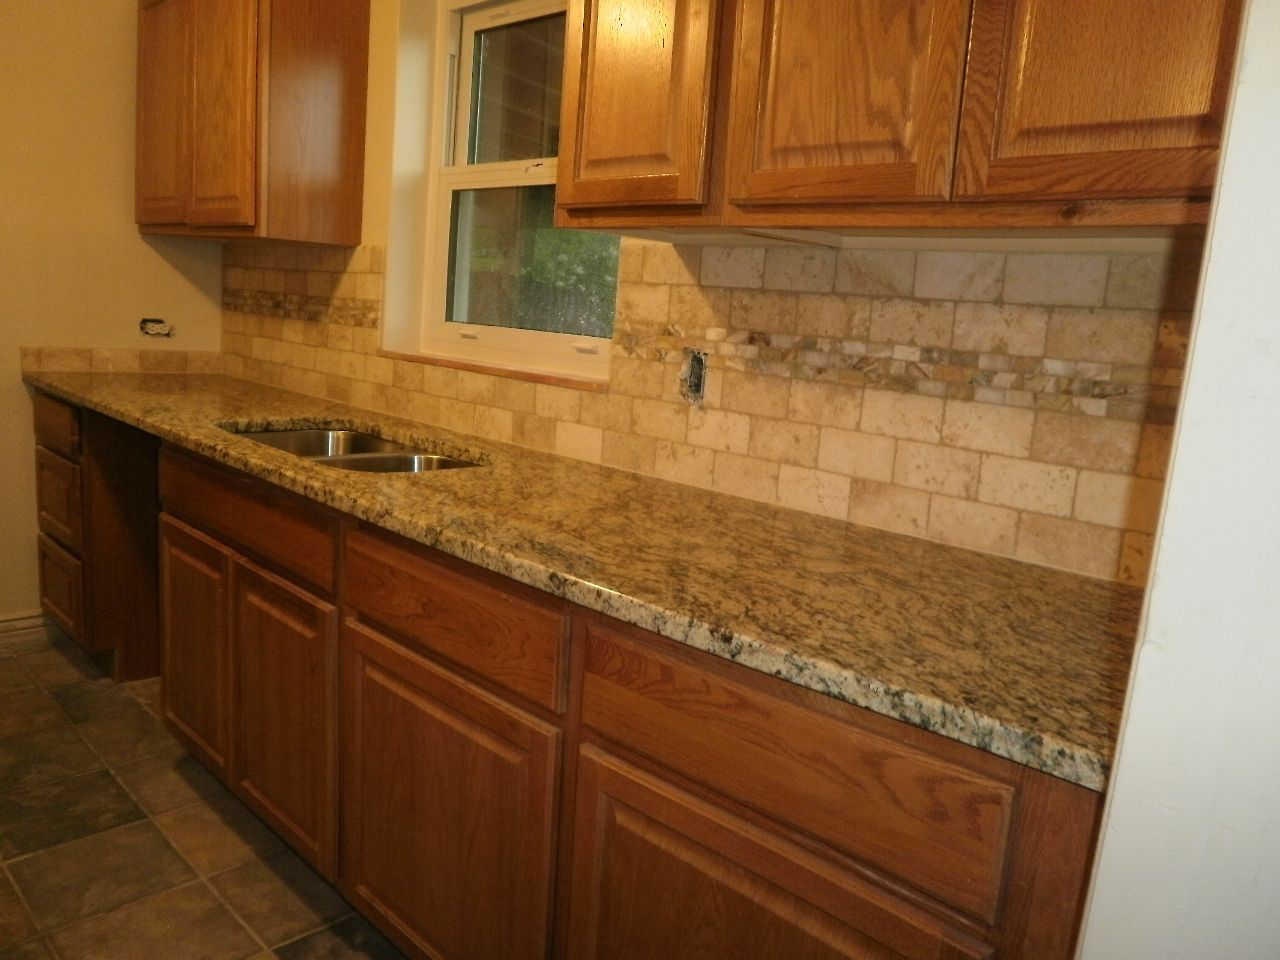 Uncategorized Kitchen Backsplashes kitchen backsplash ideas granite countertops front range llc may